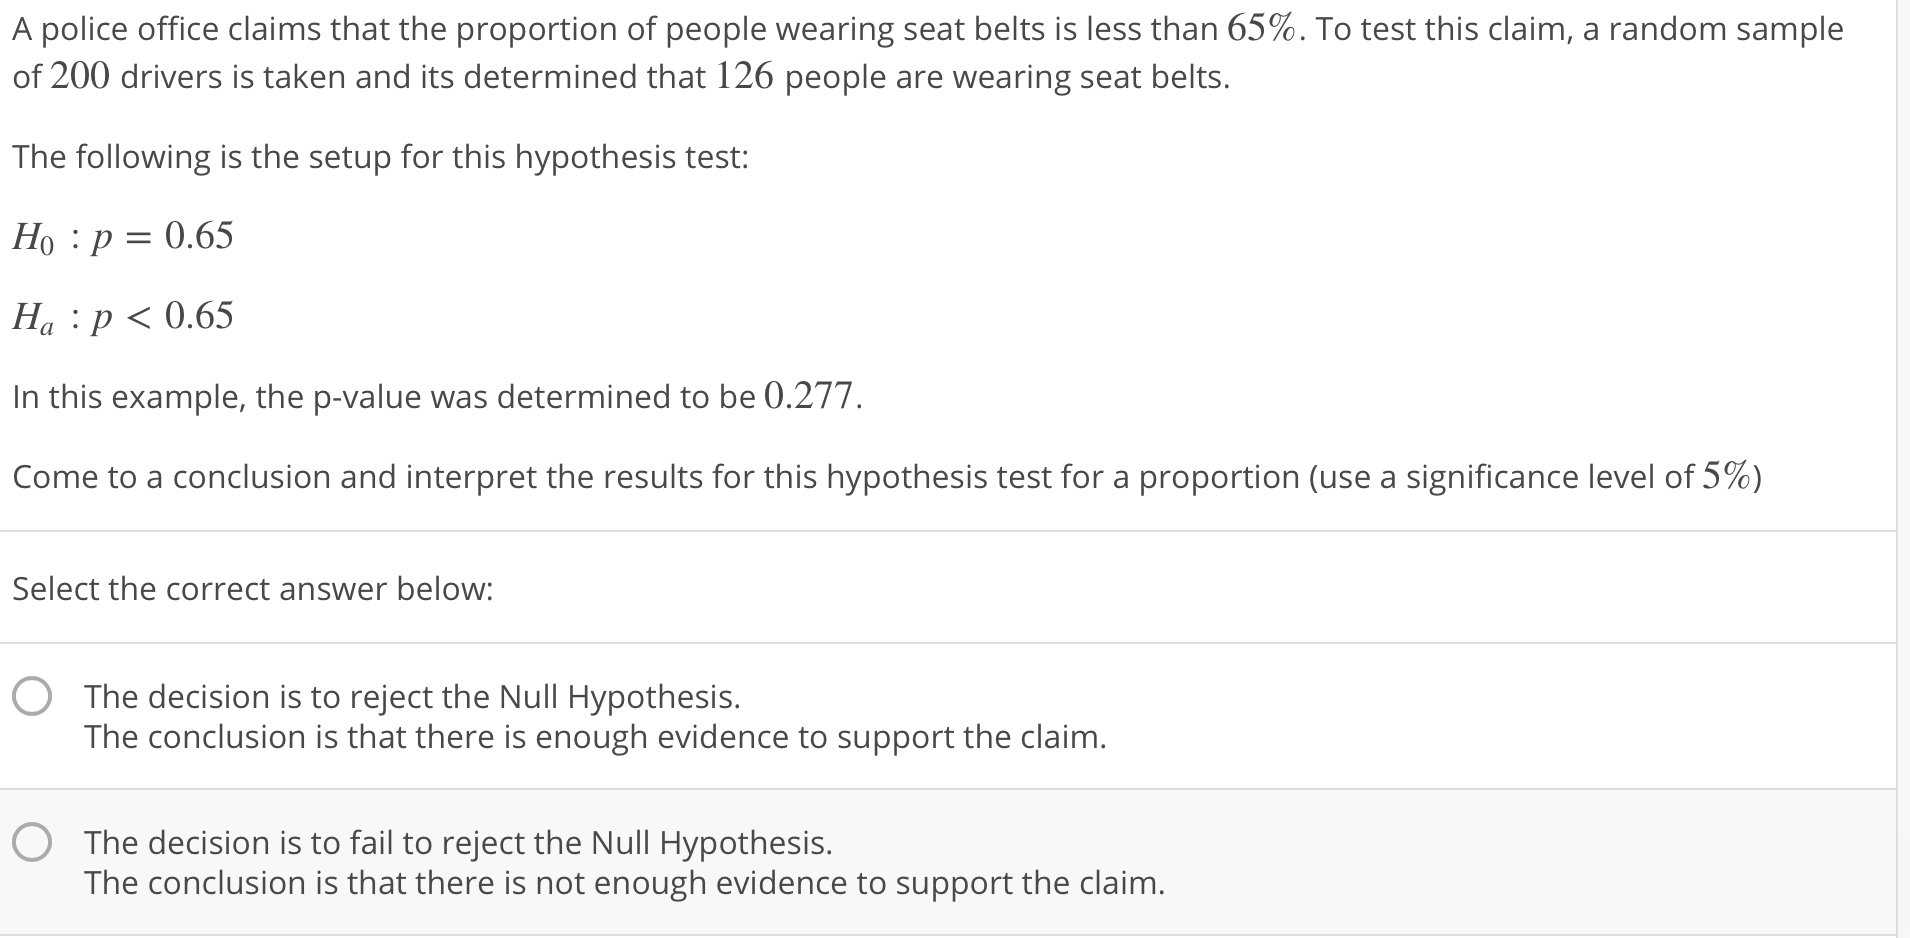 A police office claims that the proportion of people wearing seat belts is less than 65%. To test this claim, a random sample of 200 drivers is taken and its determined that 126 people are wearing seat belts. The following is the setup for this hypothesis test: Ho :p-0.65 Ha : p < 0.65 In this example, the p-value was determined to be 0.277 come to a conclusion and interpret the results for this hypothesis test for a proportion (use a significance level of 5%) Select the correct answer below: O The decision is to reject the Null Hypothesis. The conclusion is that there is enough evidence to support the claim The decision is to fail to reject the Null Hypothesis. The conclusion is that there is not enough evidence to support the claim